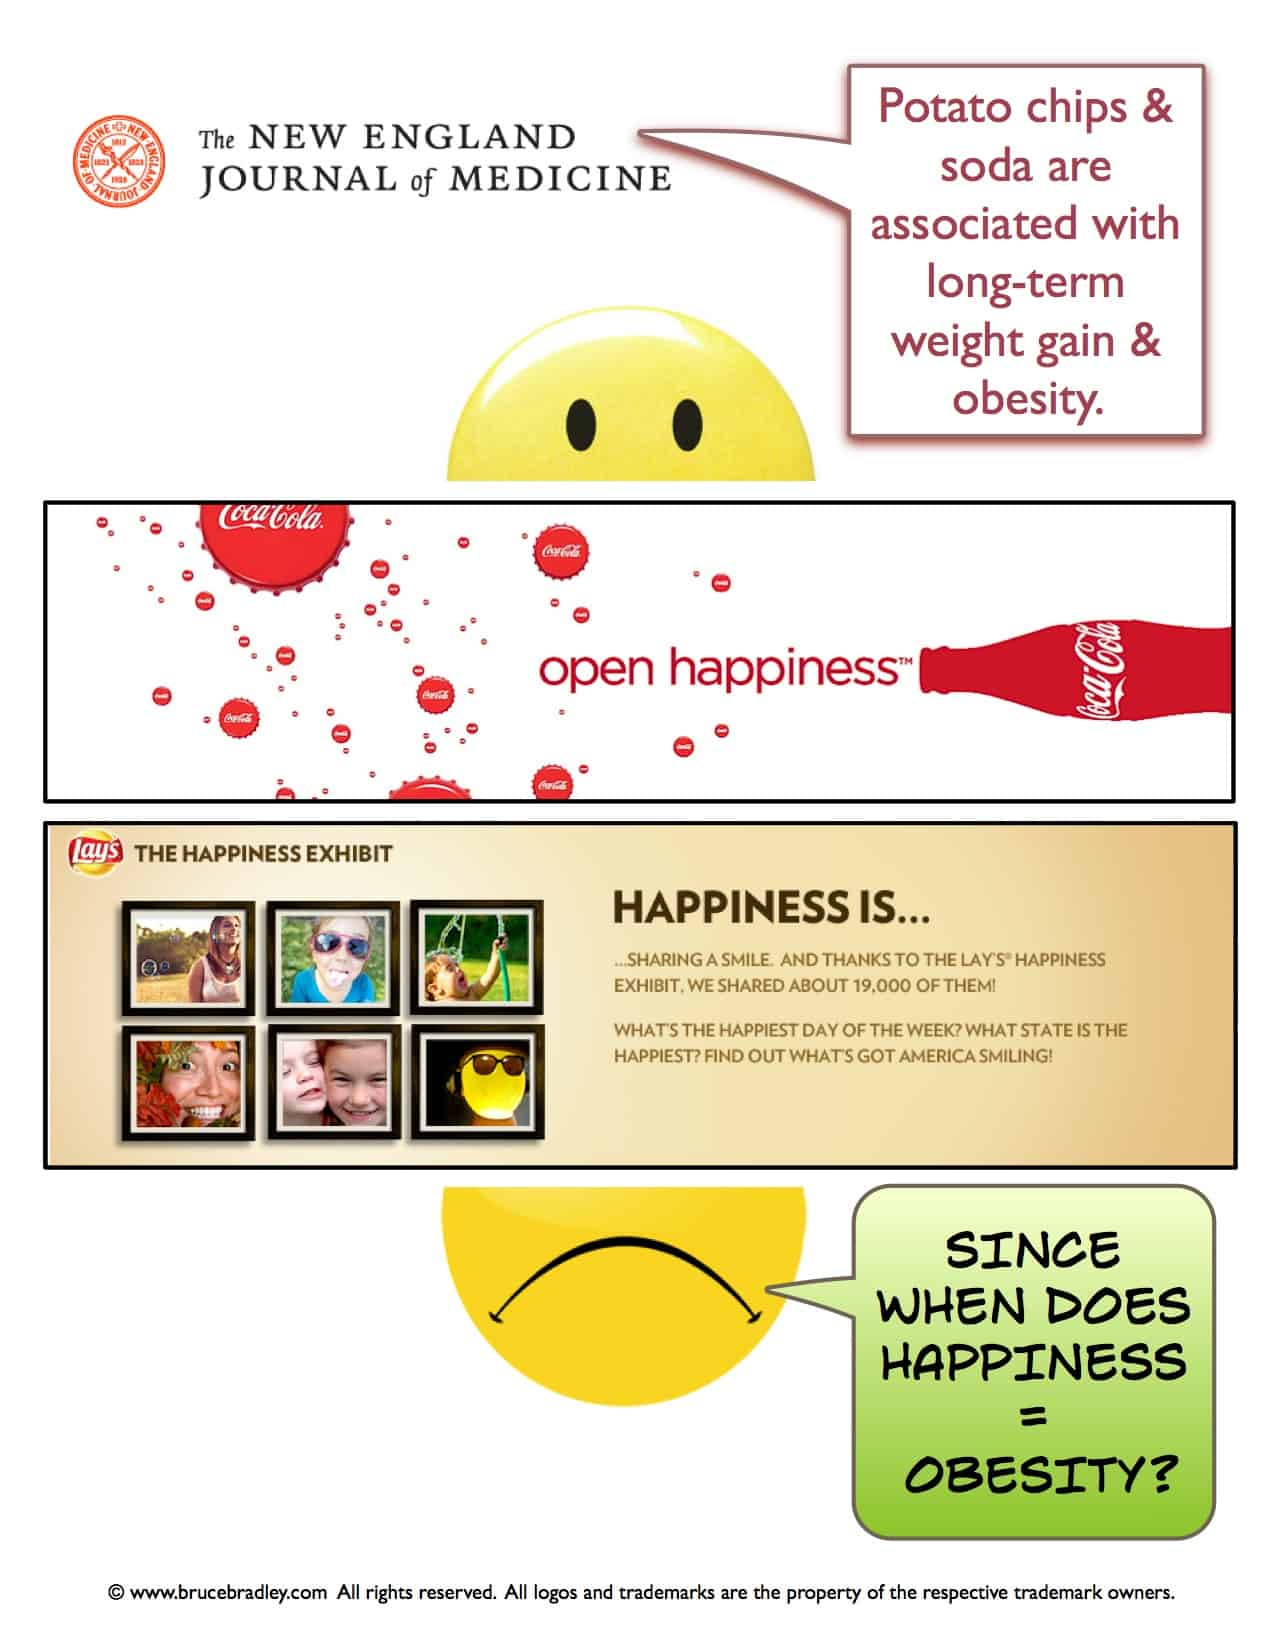 Do Foods that Make you fat equal happiness?